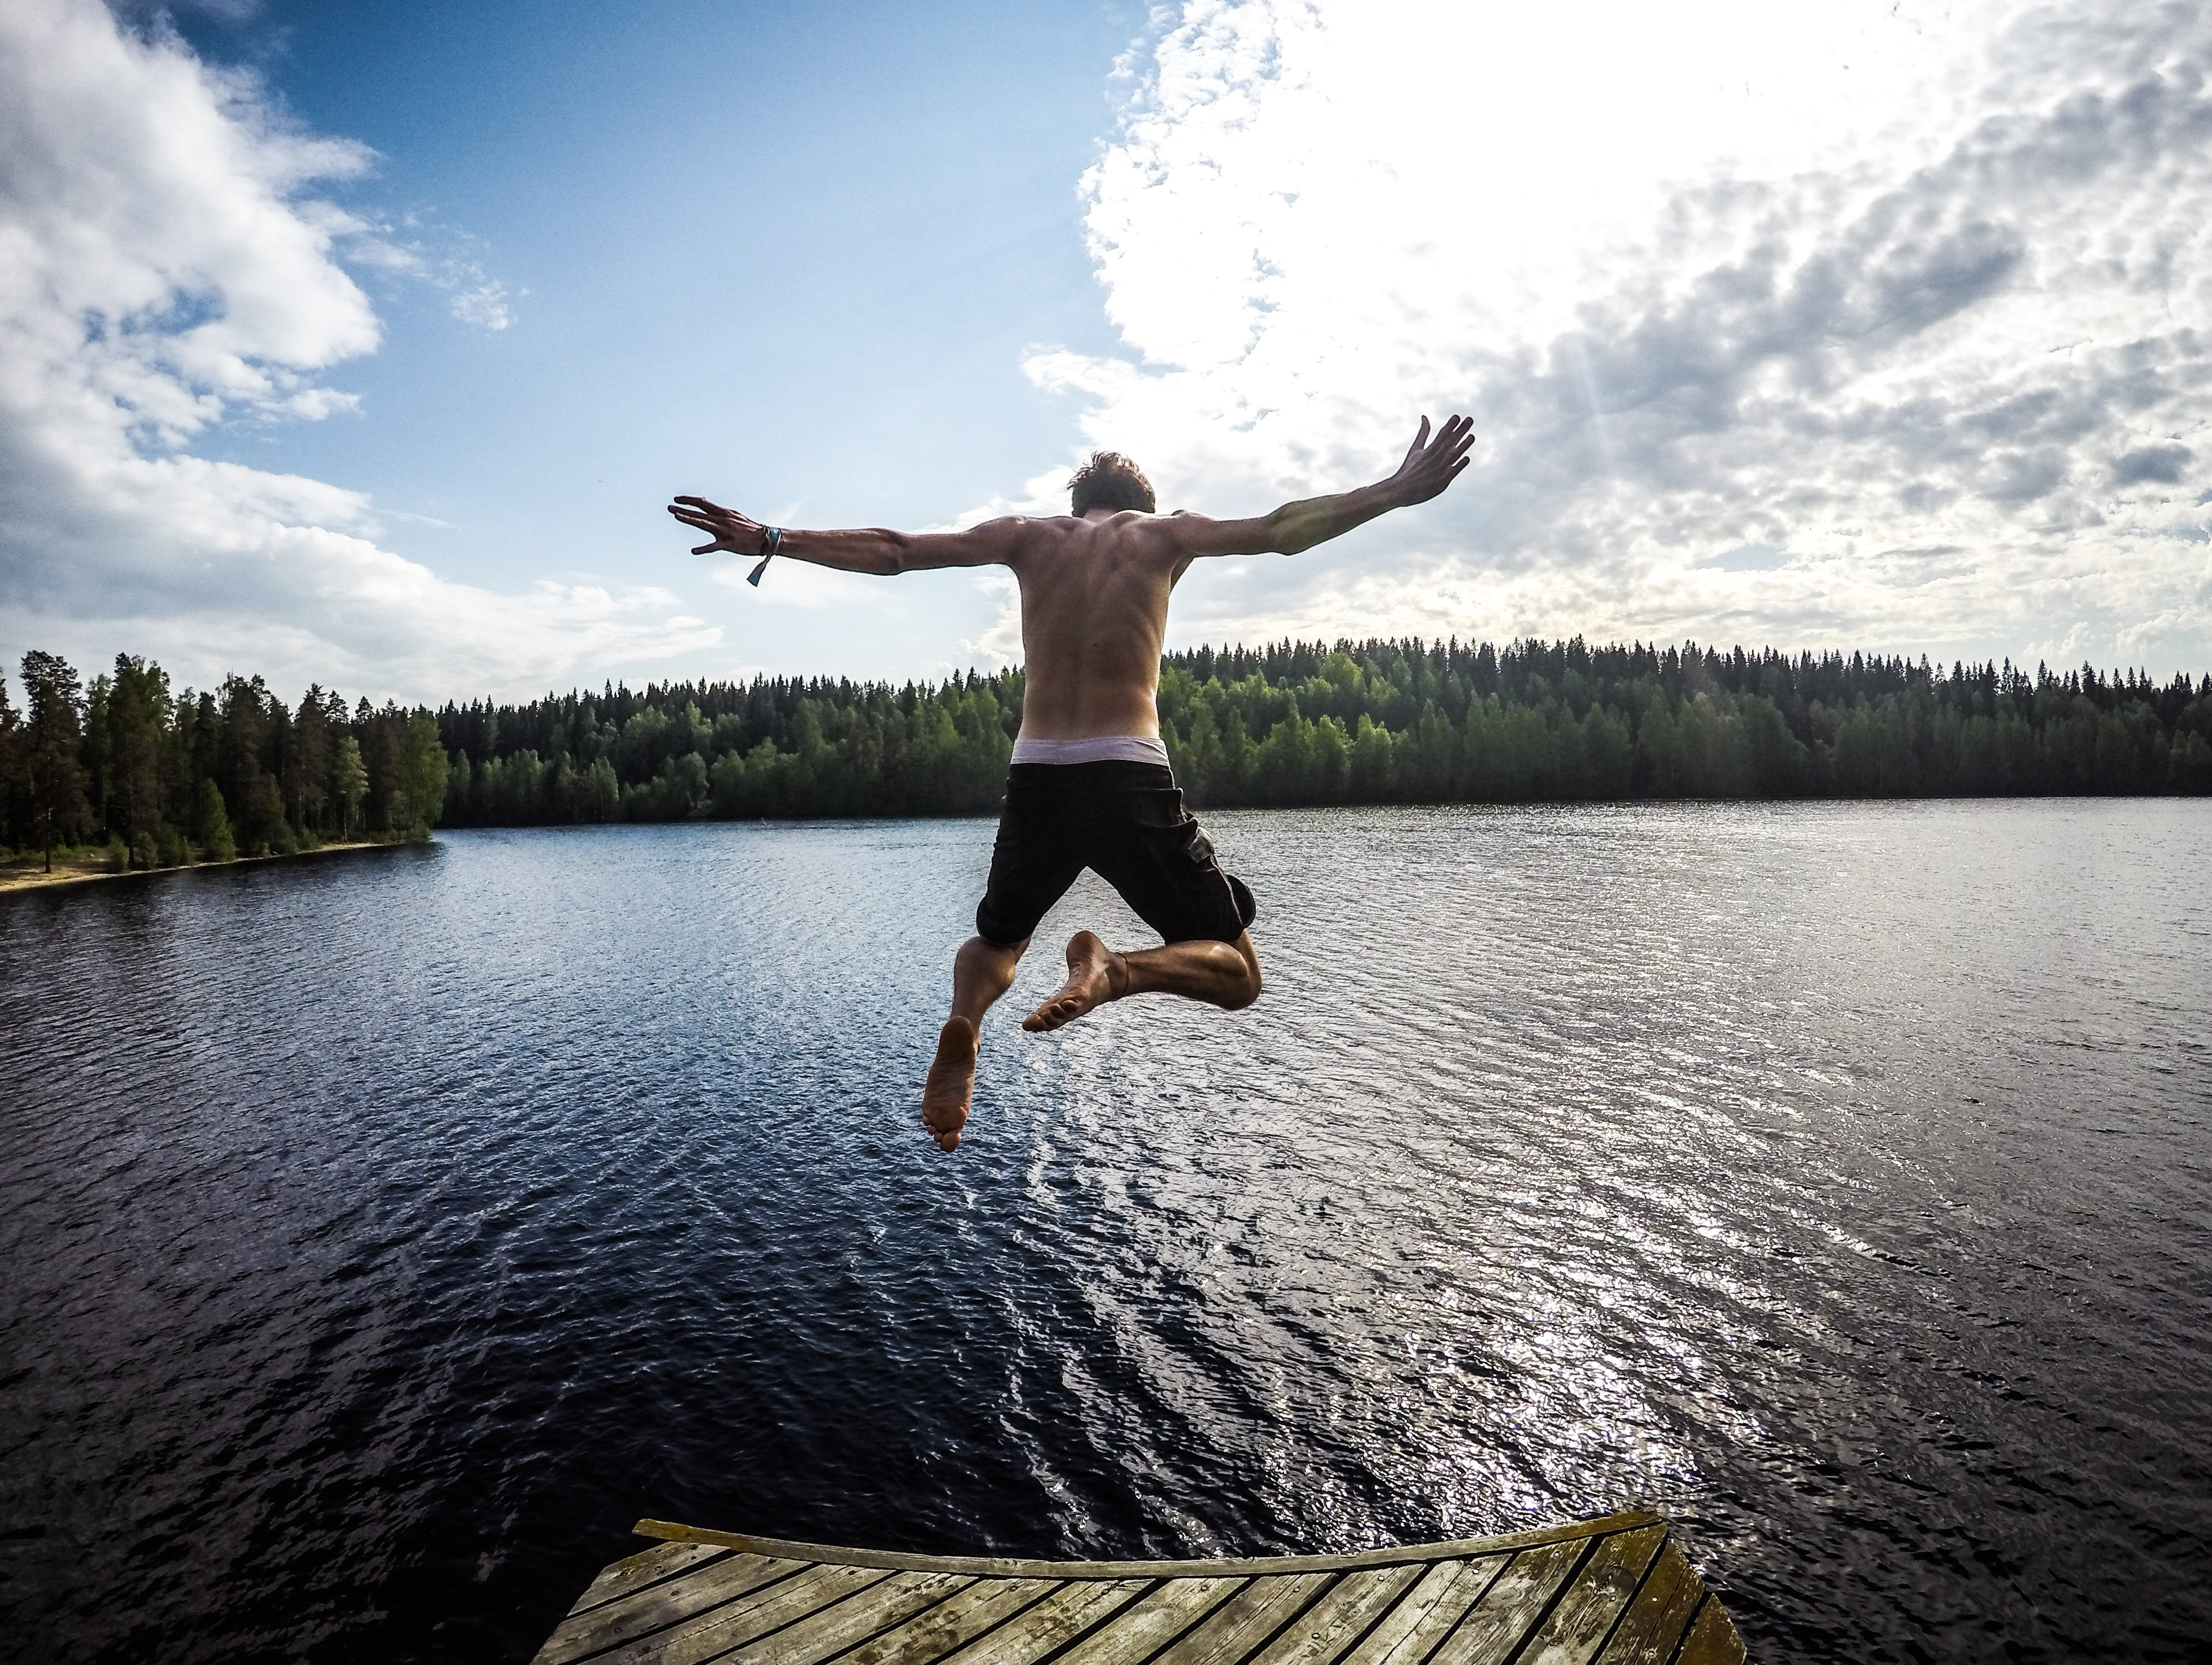 A man leaping into a lake from a pier